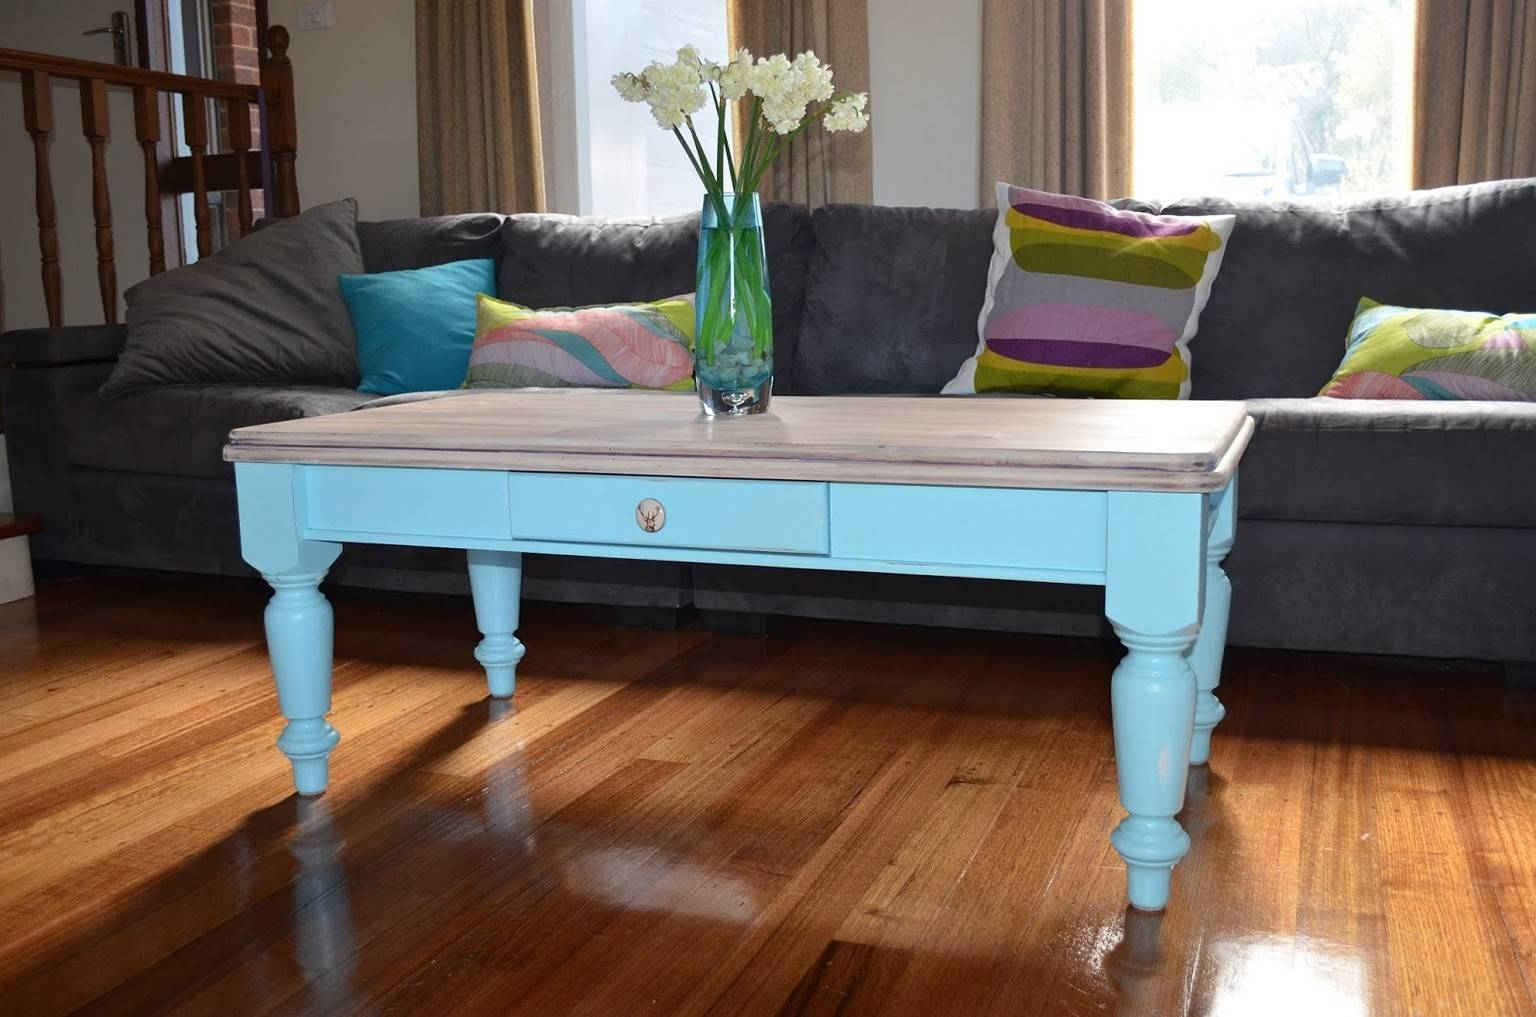 Painted Coffee Tables To Change The Appearance throughout Retro White Coffee Tables (Image 19 of 30)